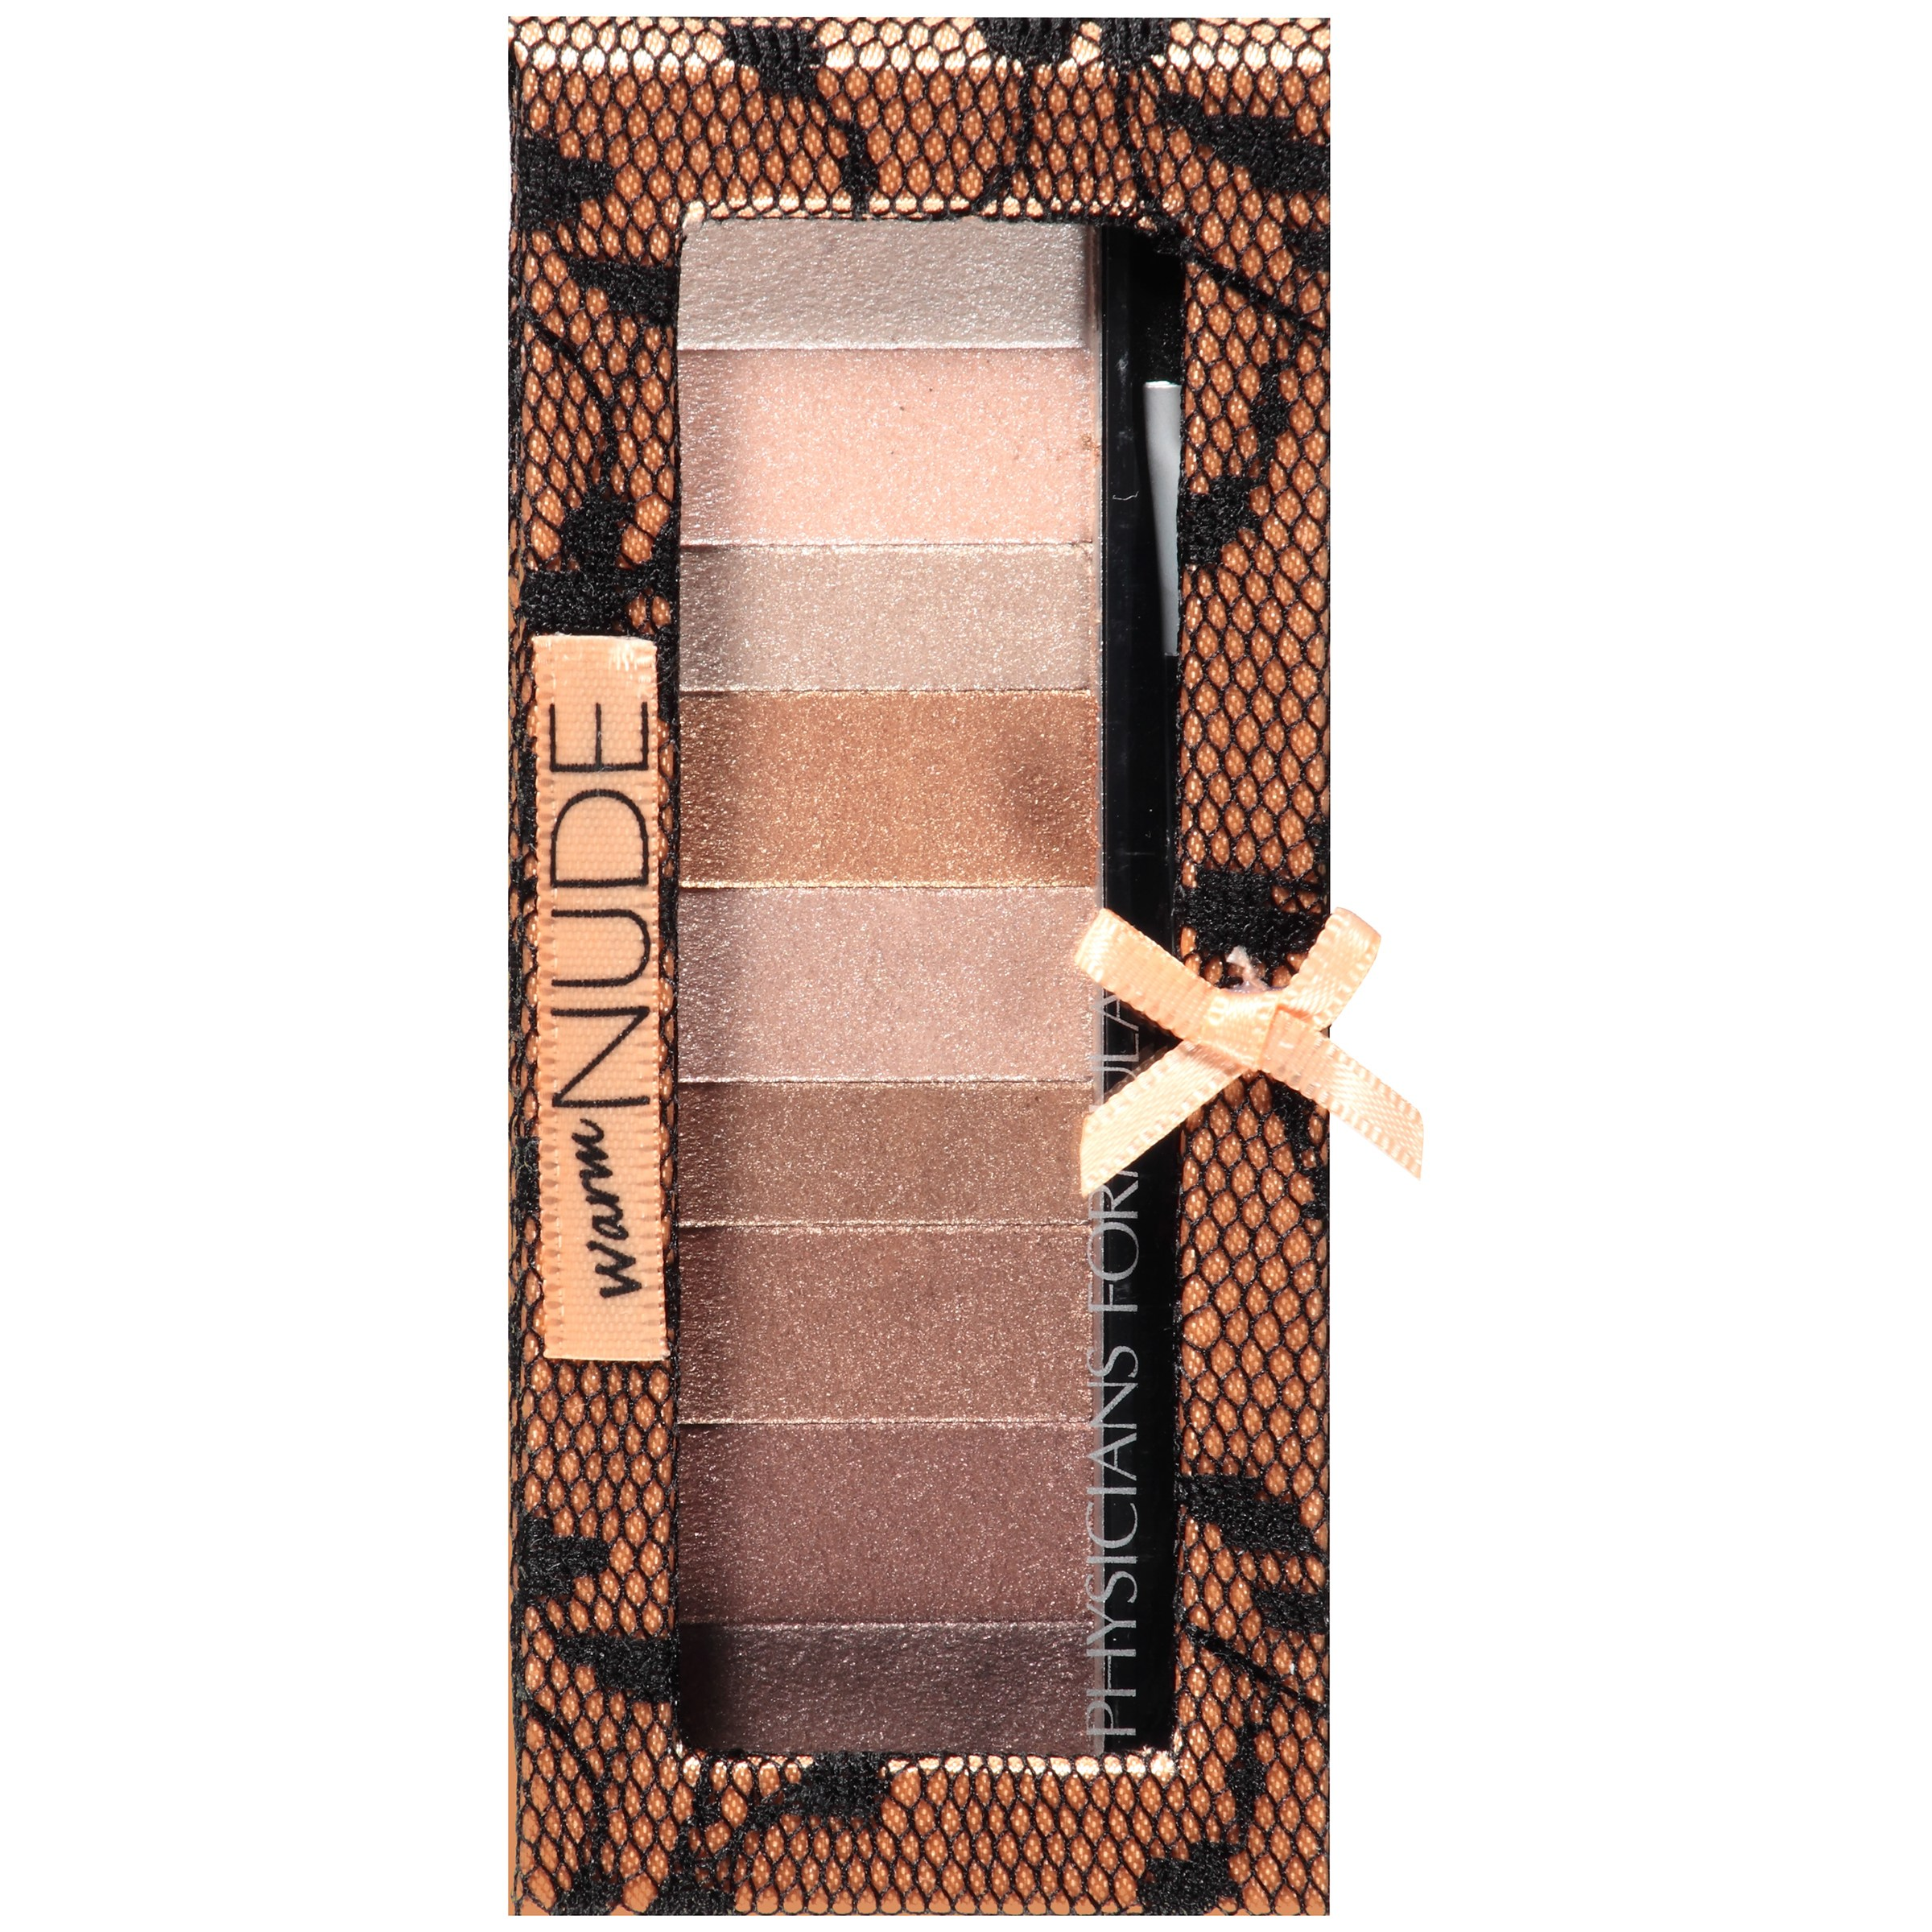 Physicians Formula Shimmer Strips Custom Eye Enhancing Eye Shadow Nude Collection - Warm Nude Eyes